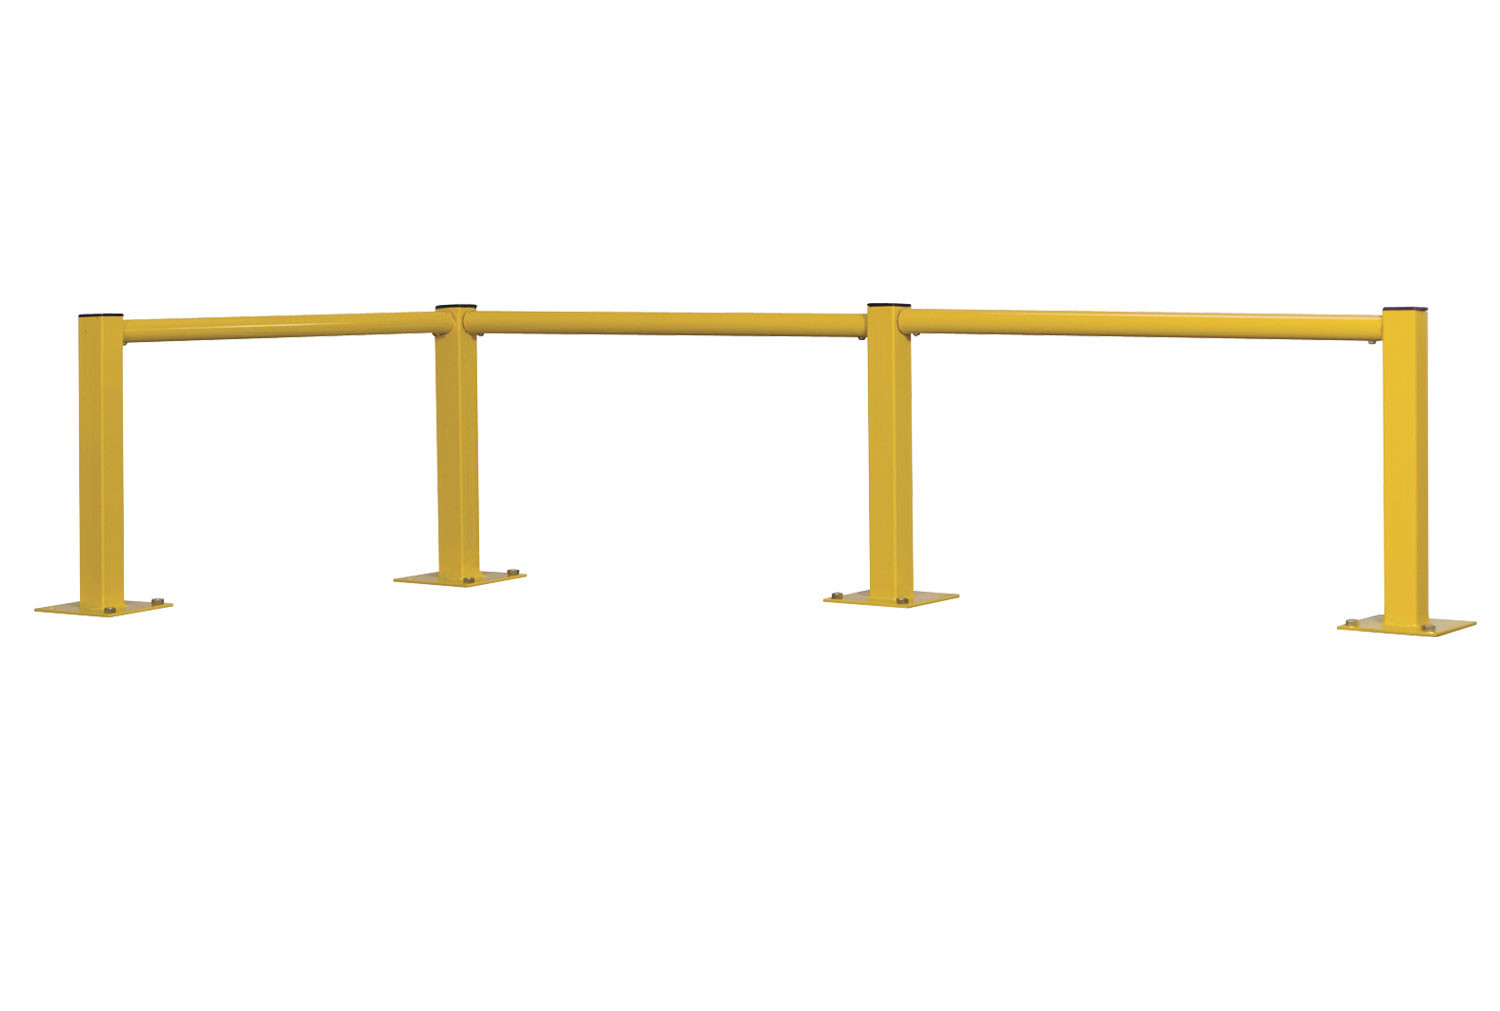 Single Round Tube Rail Barrier Posts